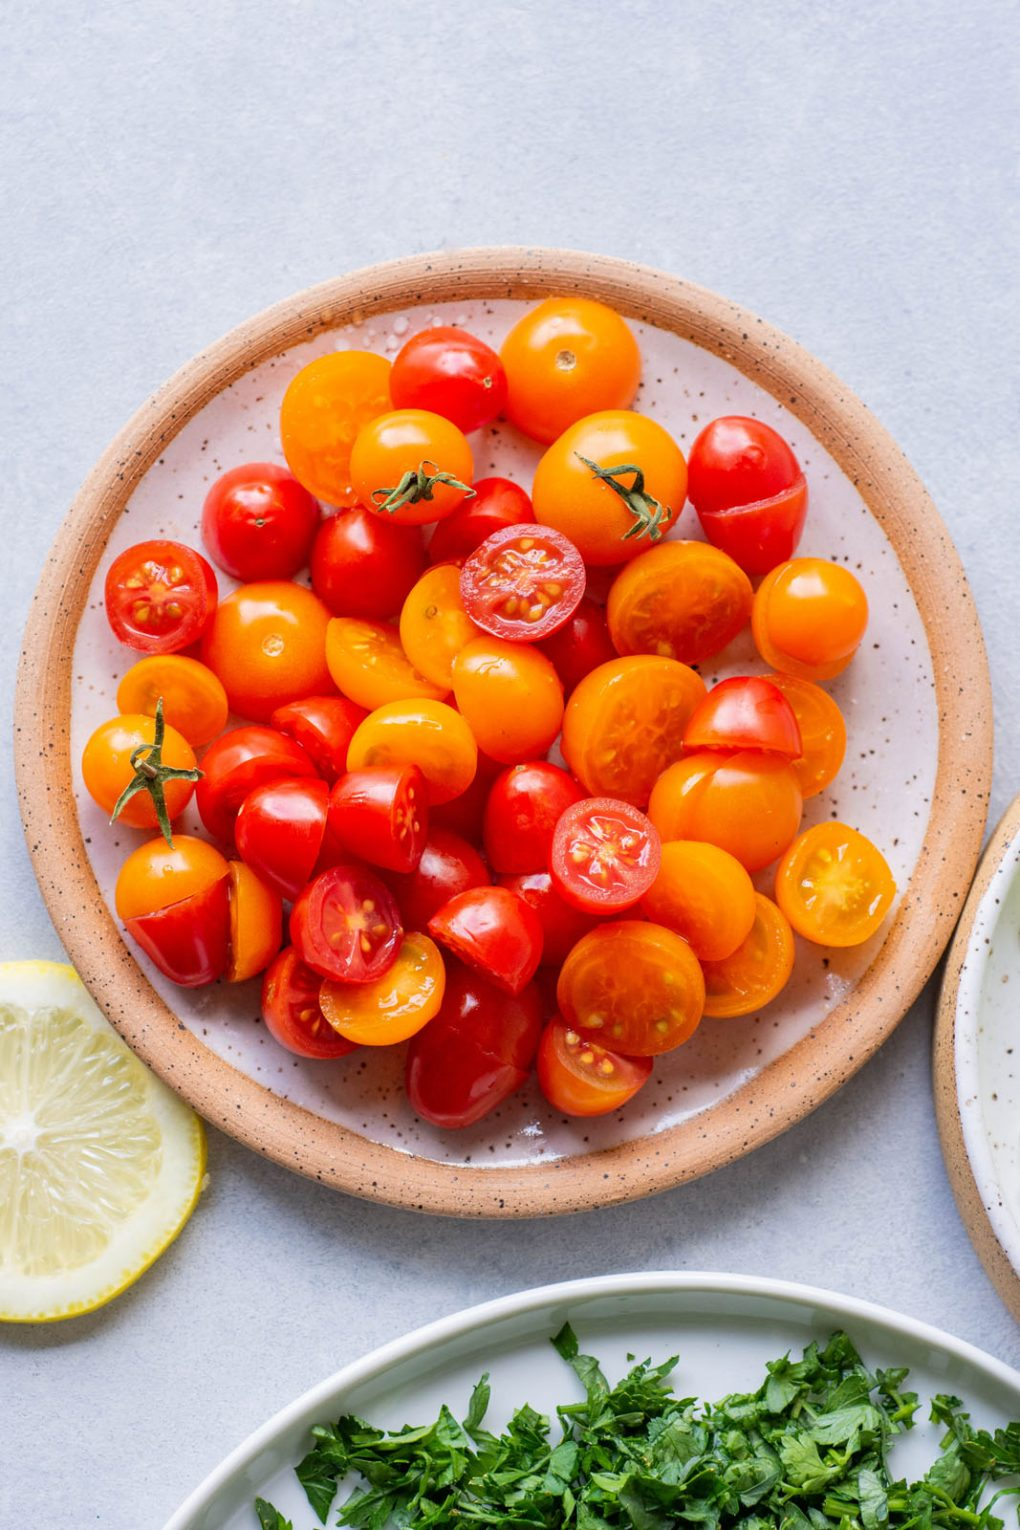 Upclose overhead shot of a speckled white plate filled with red and orange cherry tomatoes. On a light colored background.